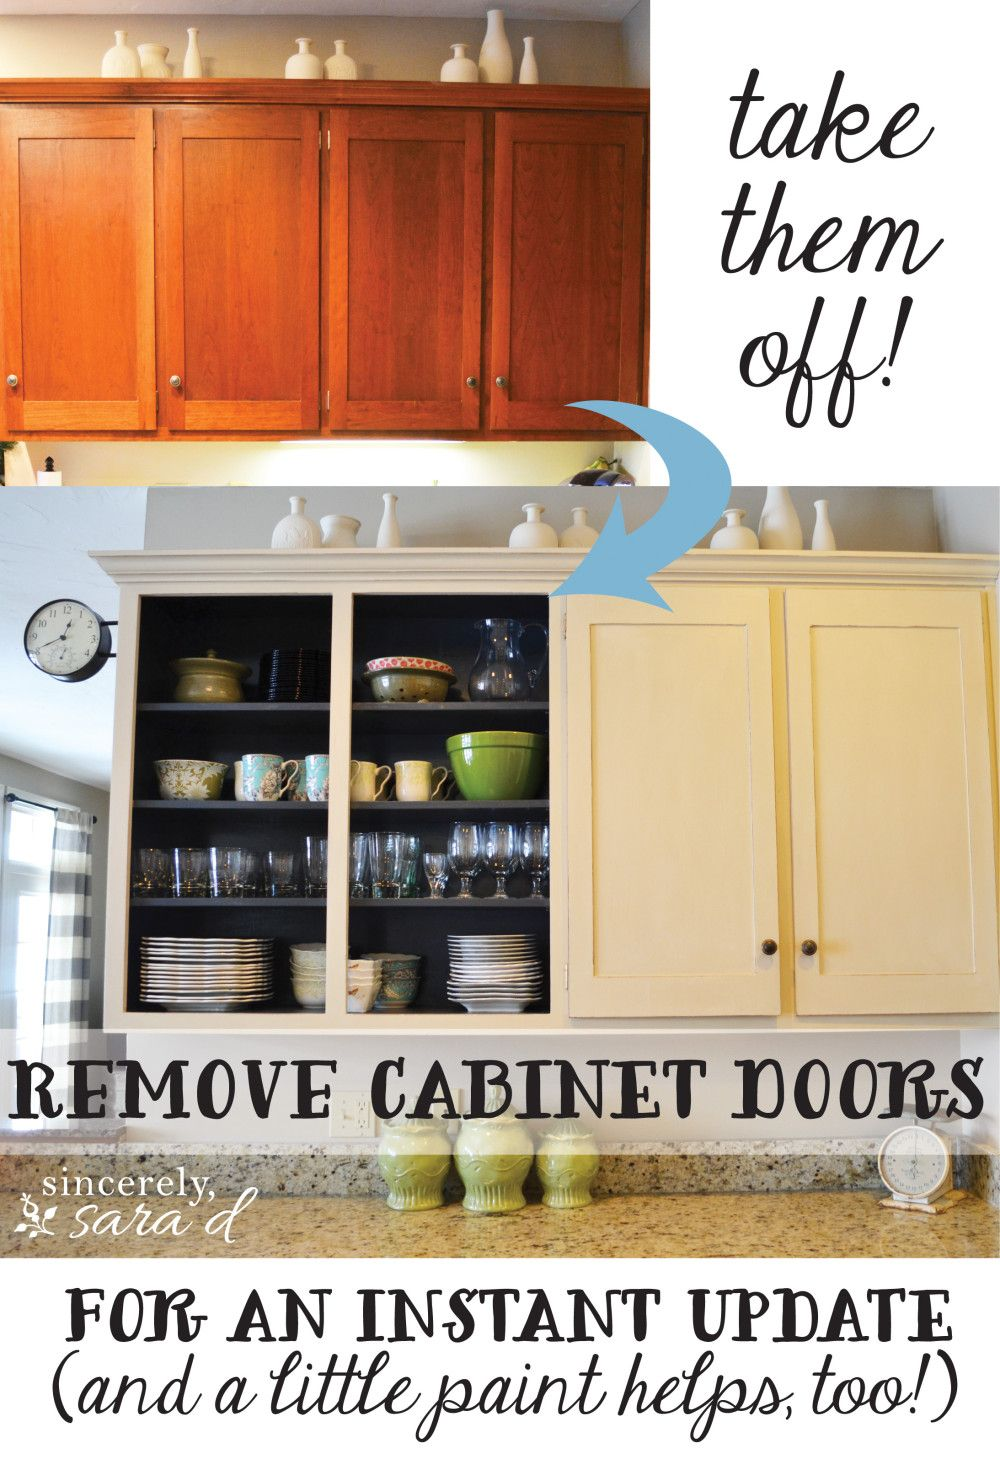 Remove Cabinet Doors - Instant Kitchen Update - Sincerely Sara D.  sc 1 st  Pinterest & Remove Cabinet Doors - Instant Kitchen Update | Kitchen updates ...